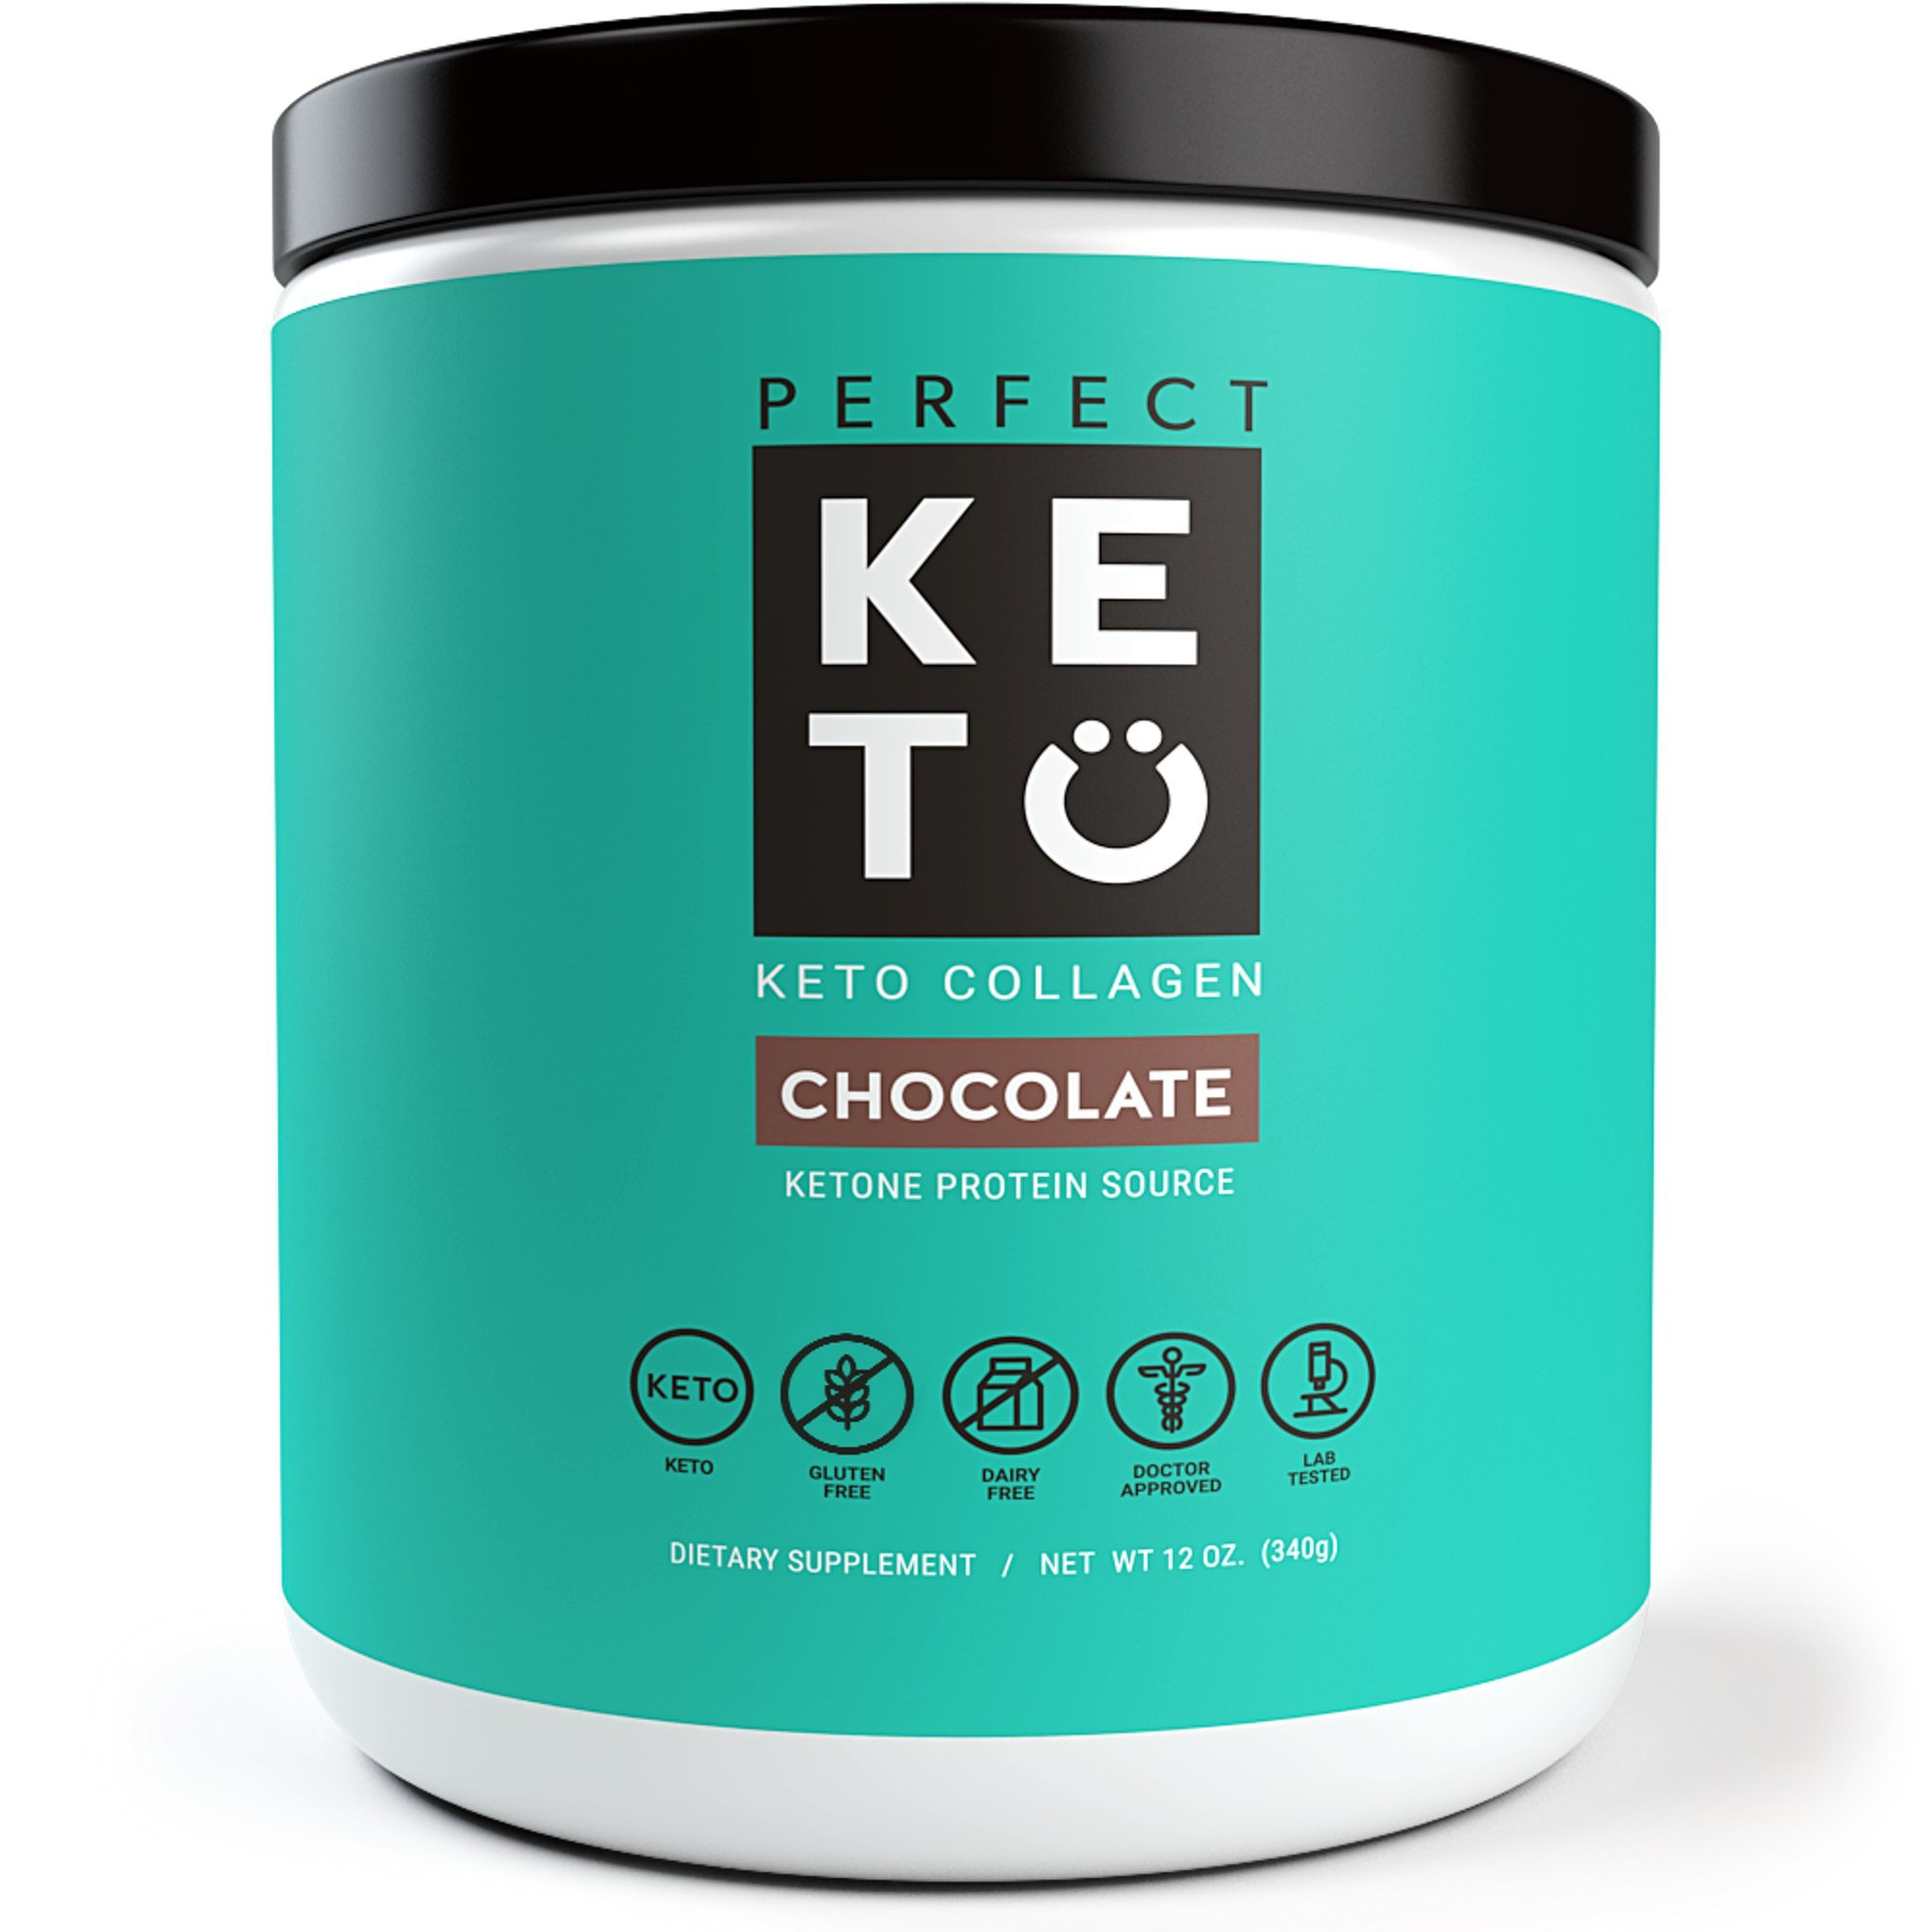 Perfect Keto Chocolate Protein Powder- Collagen Peptides Grassfed low Carb Keto Drink Supplement With MCT Oil Powder - Best as Keto Drink Creamer or added to Ketogenic Diet Snacks. Paleo & Gluten Free